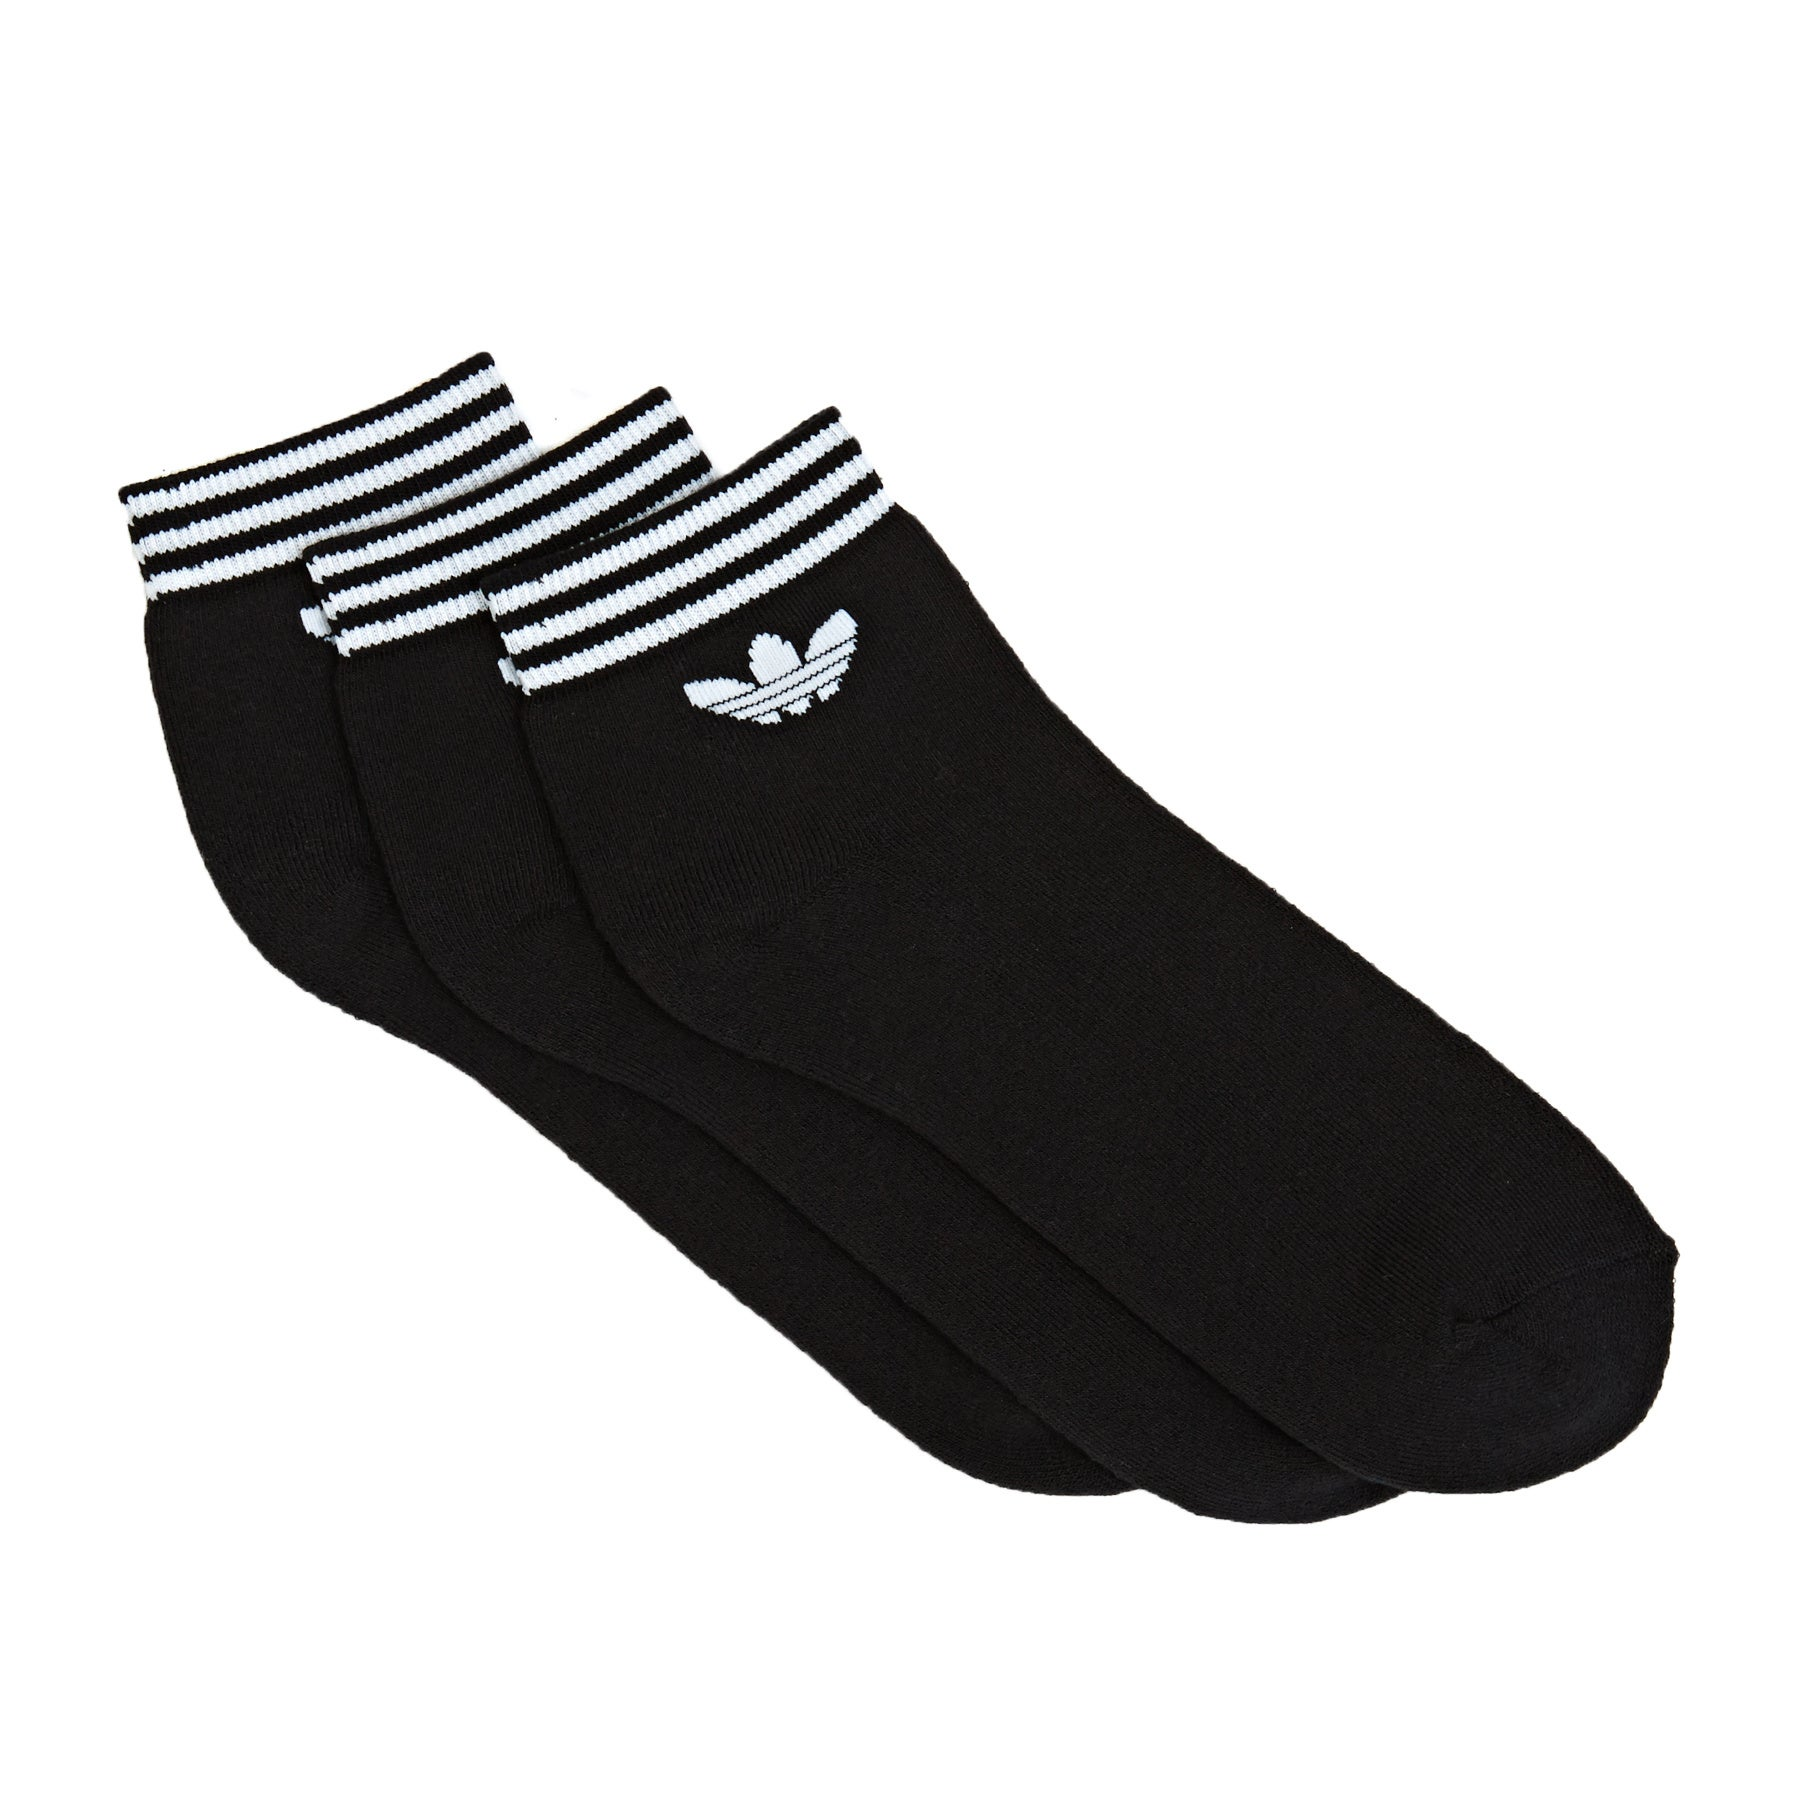 Adidas Originals Trefoil Ankle Stripe Socks - Black